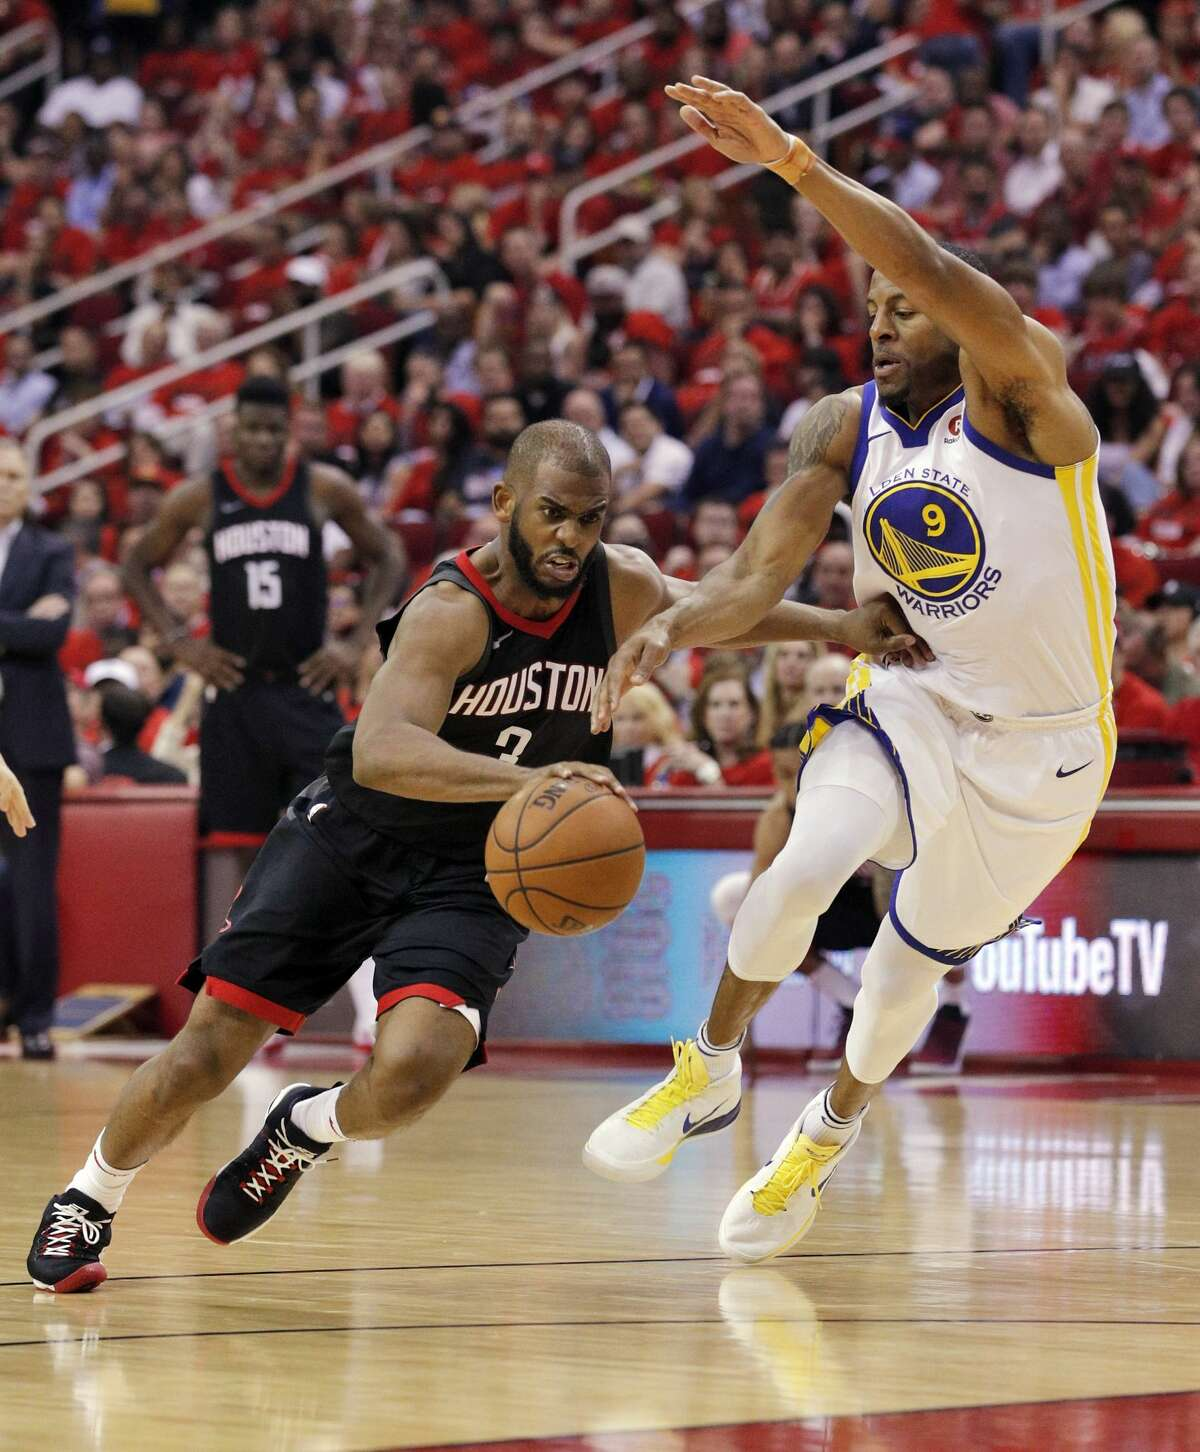 Chris Paul (3) drives to the basket against Andre Iguodala (9) in the second half as the Golden State Warriors played by the Houston Rockets in Game 2 of the Western Conference Finals at Toyota Center in Houston, Texas, on Wednesday, May 16, 2018. The Rockets won 127-105.